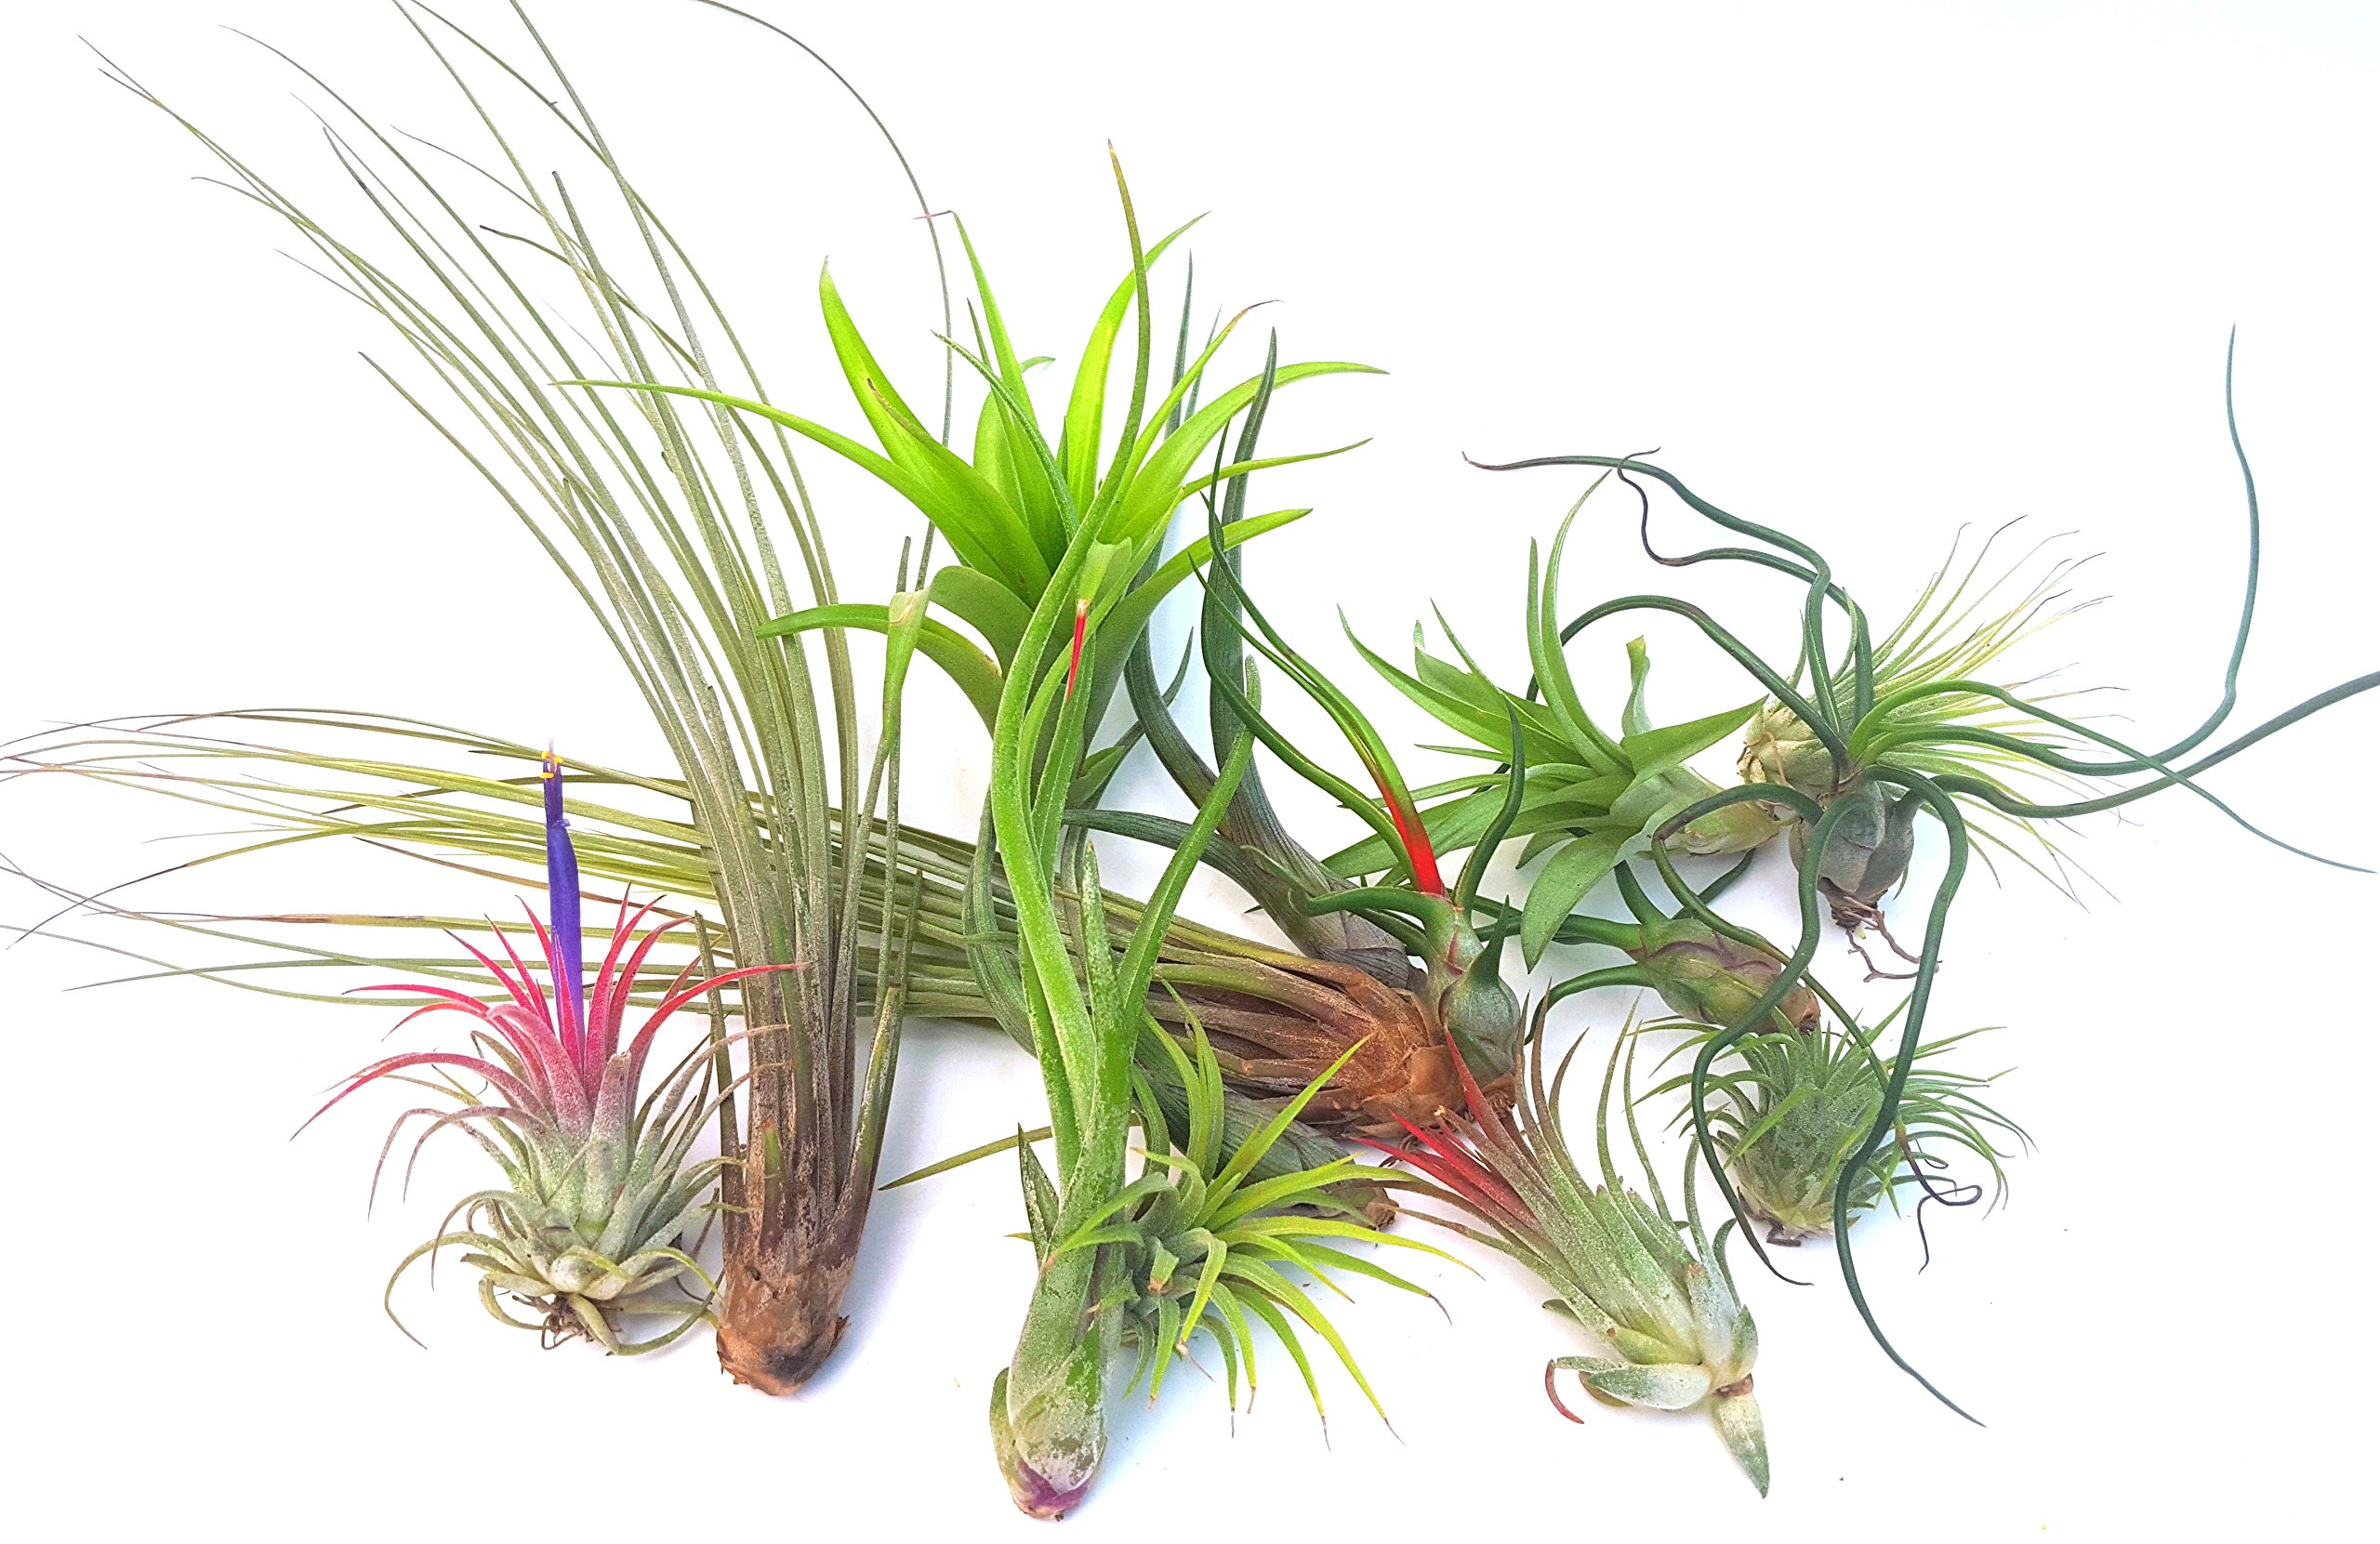 Air Flora Air Plants Exotic Mix Loose Growers Choice, Small, Mix Colors